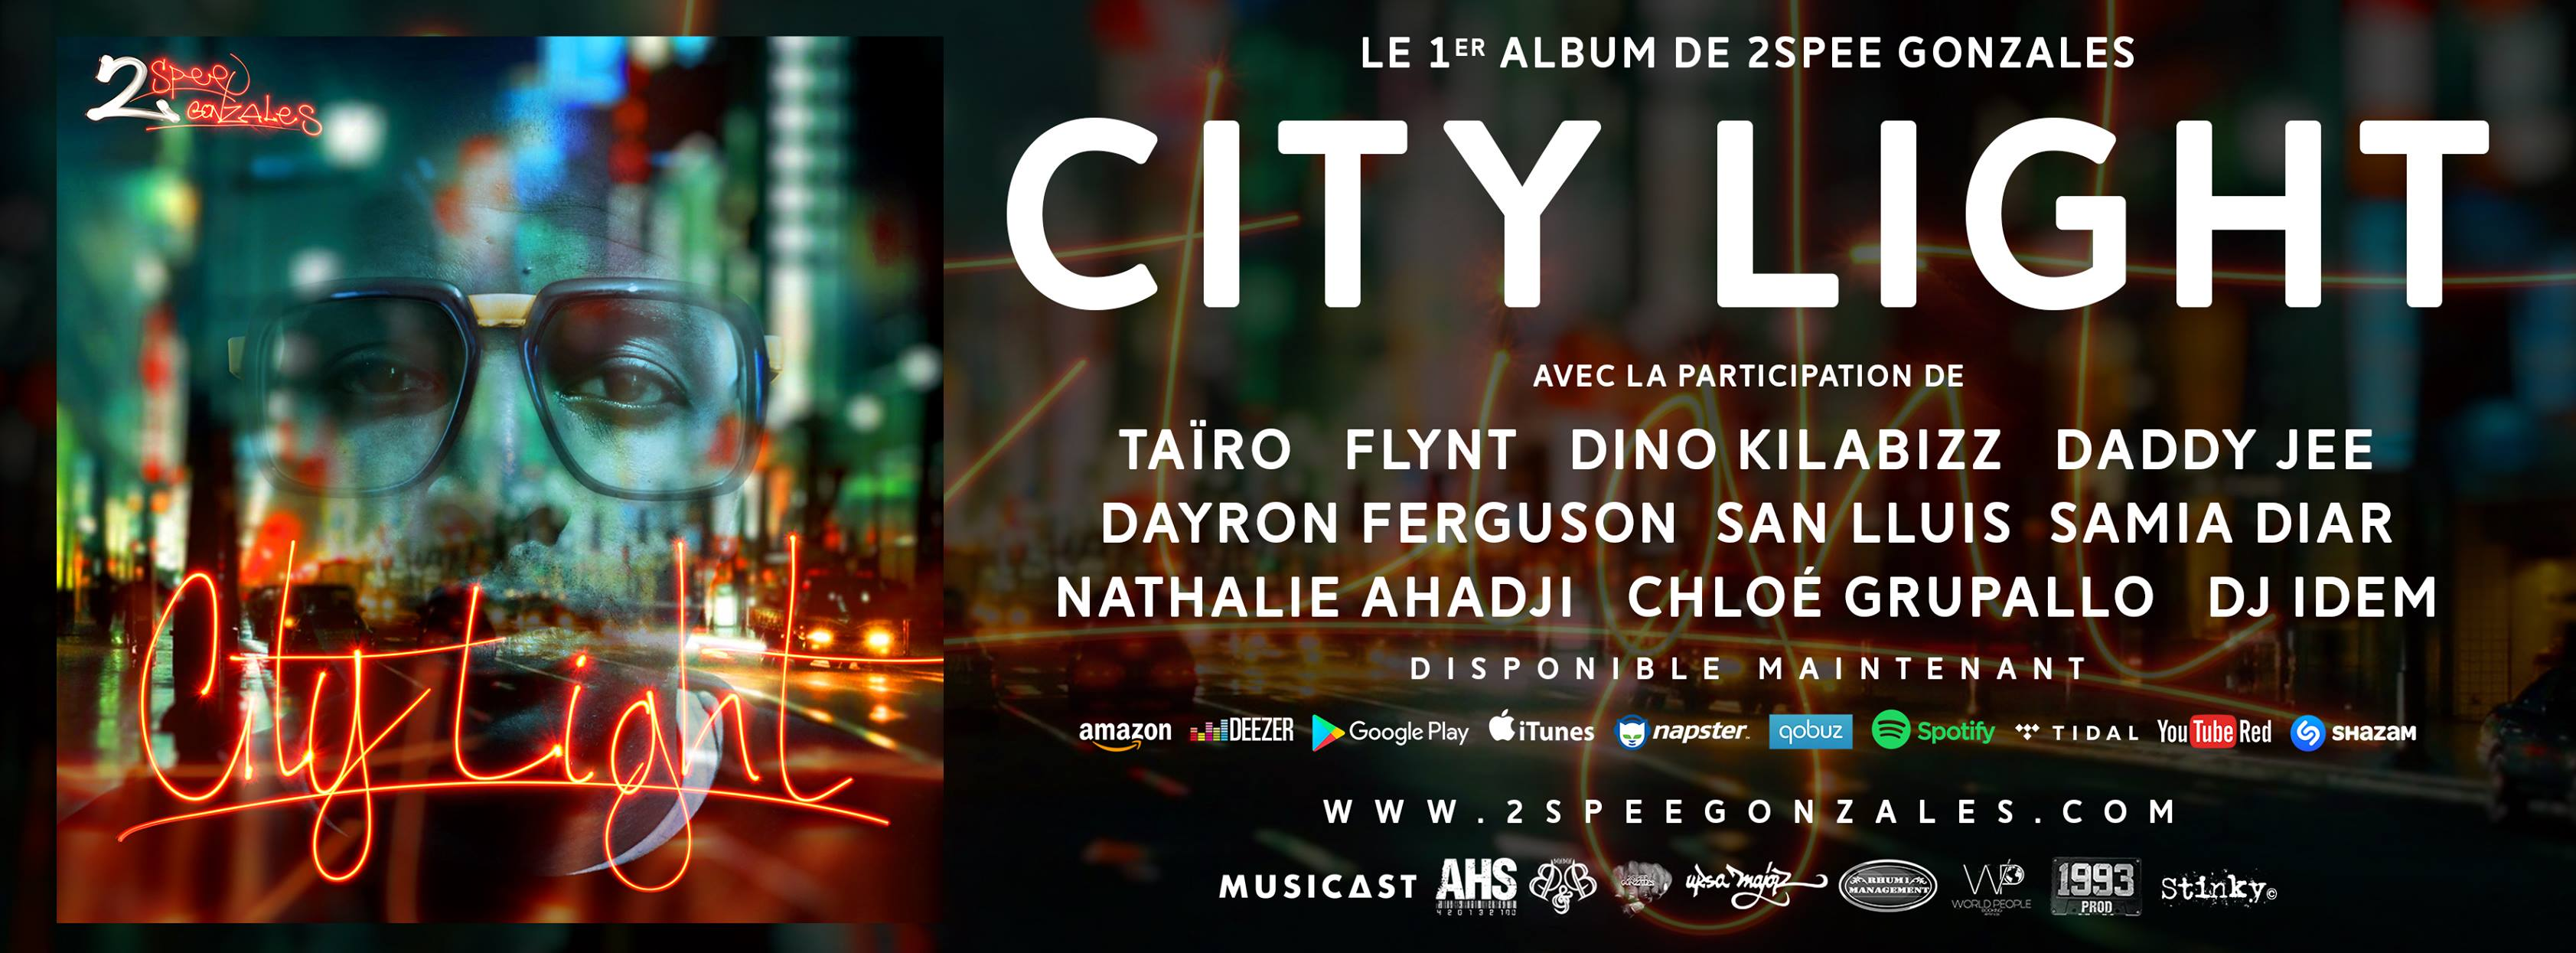 "Sortie de l'album ""City light"" de 2Spee Gonzales"